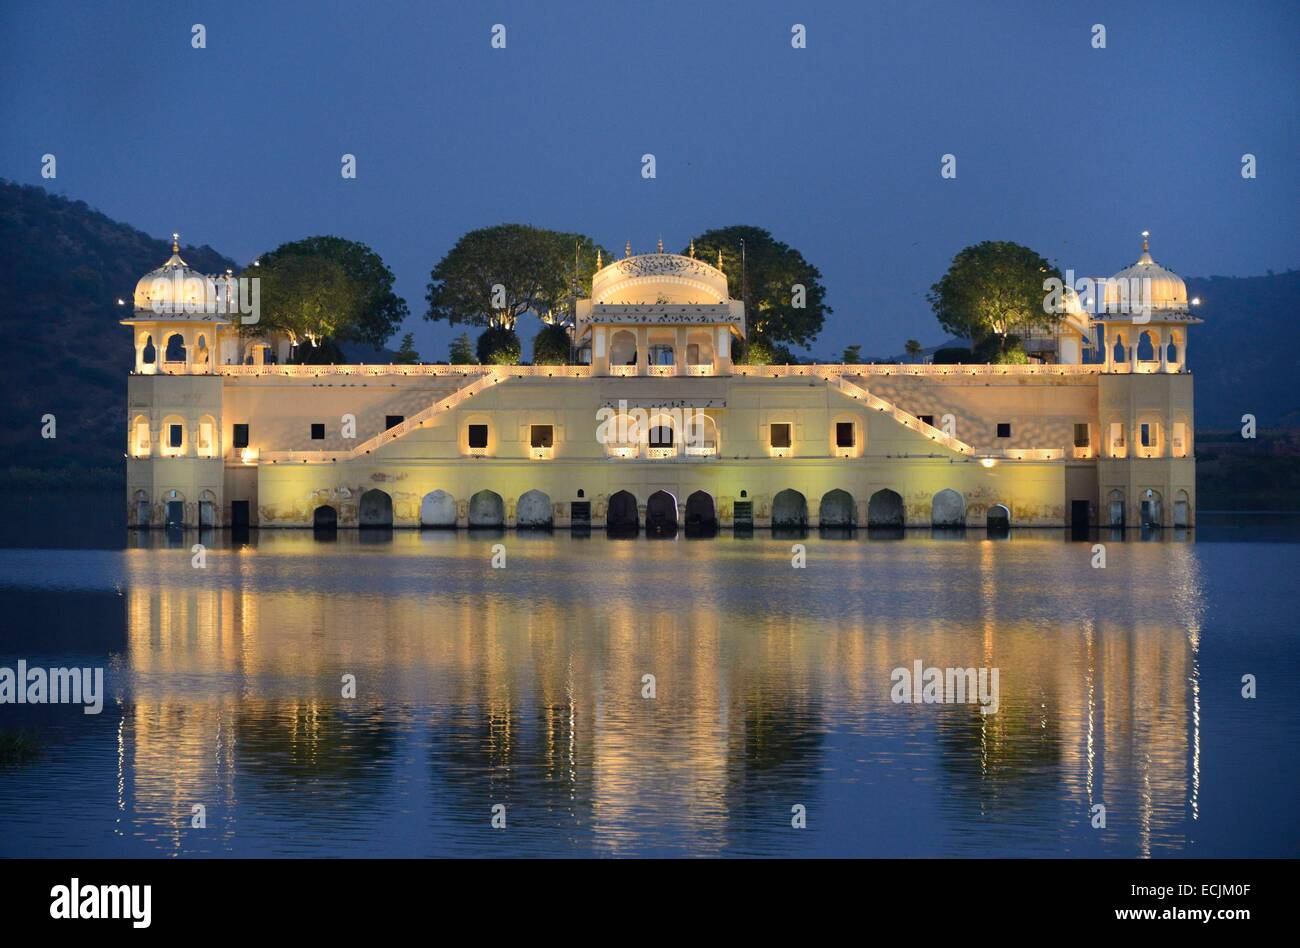 India, Rajasthan, Jaipur, Diwali festival, Jal Mahal Palace by night - Stock Image